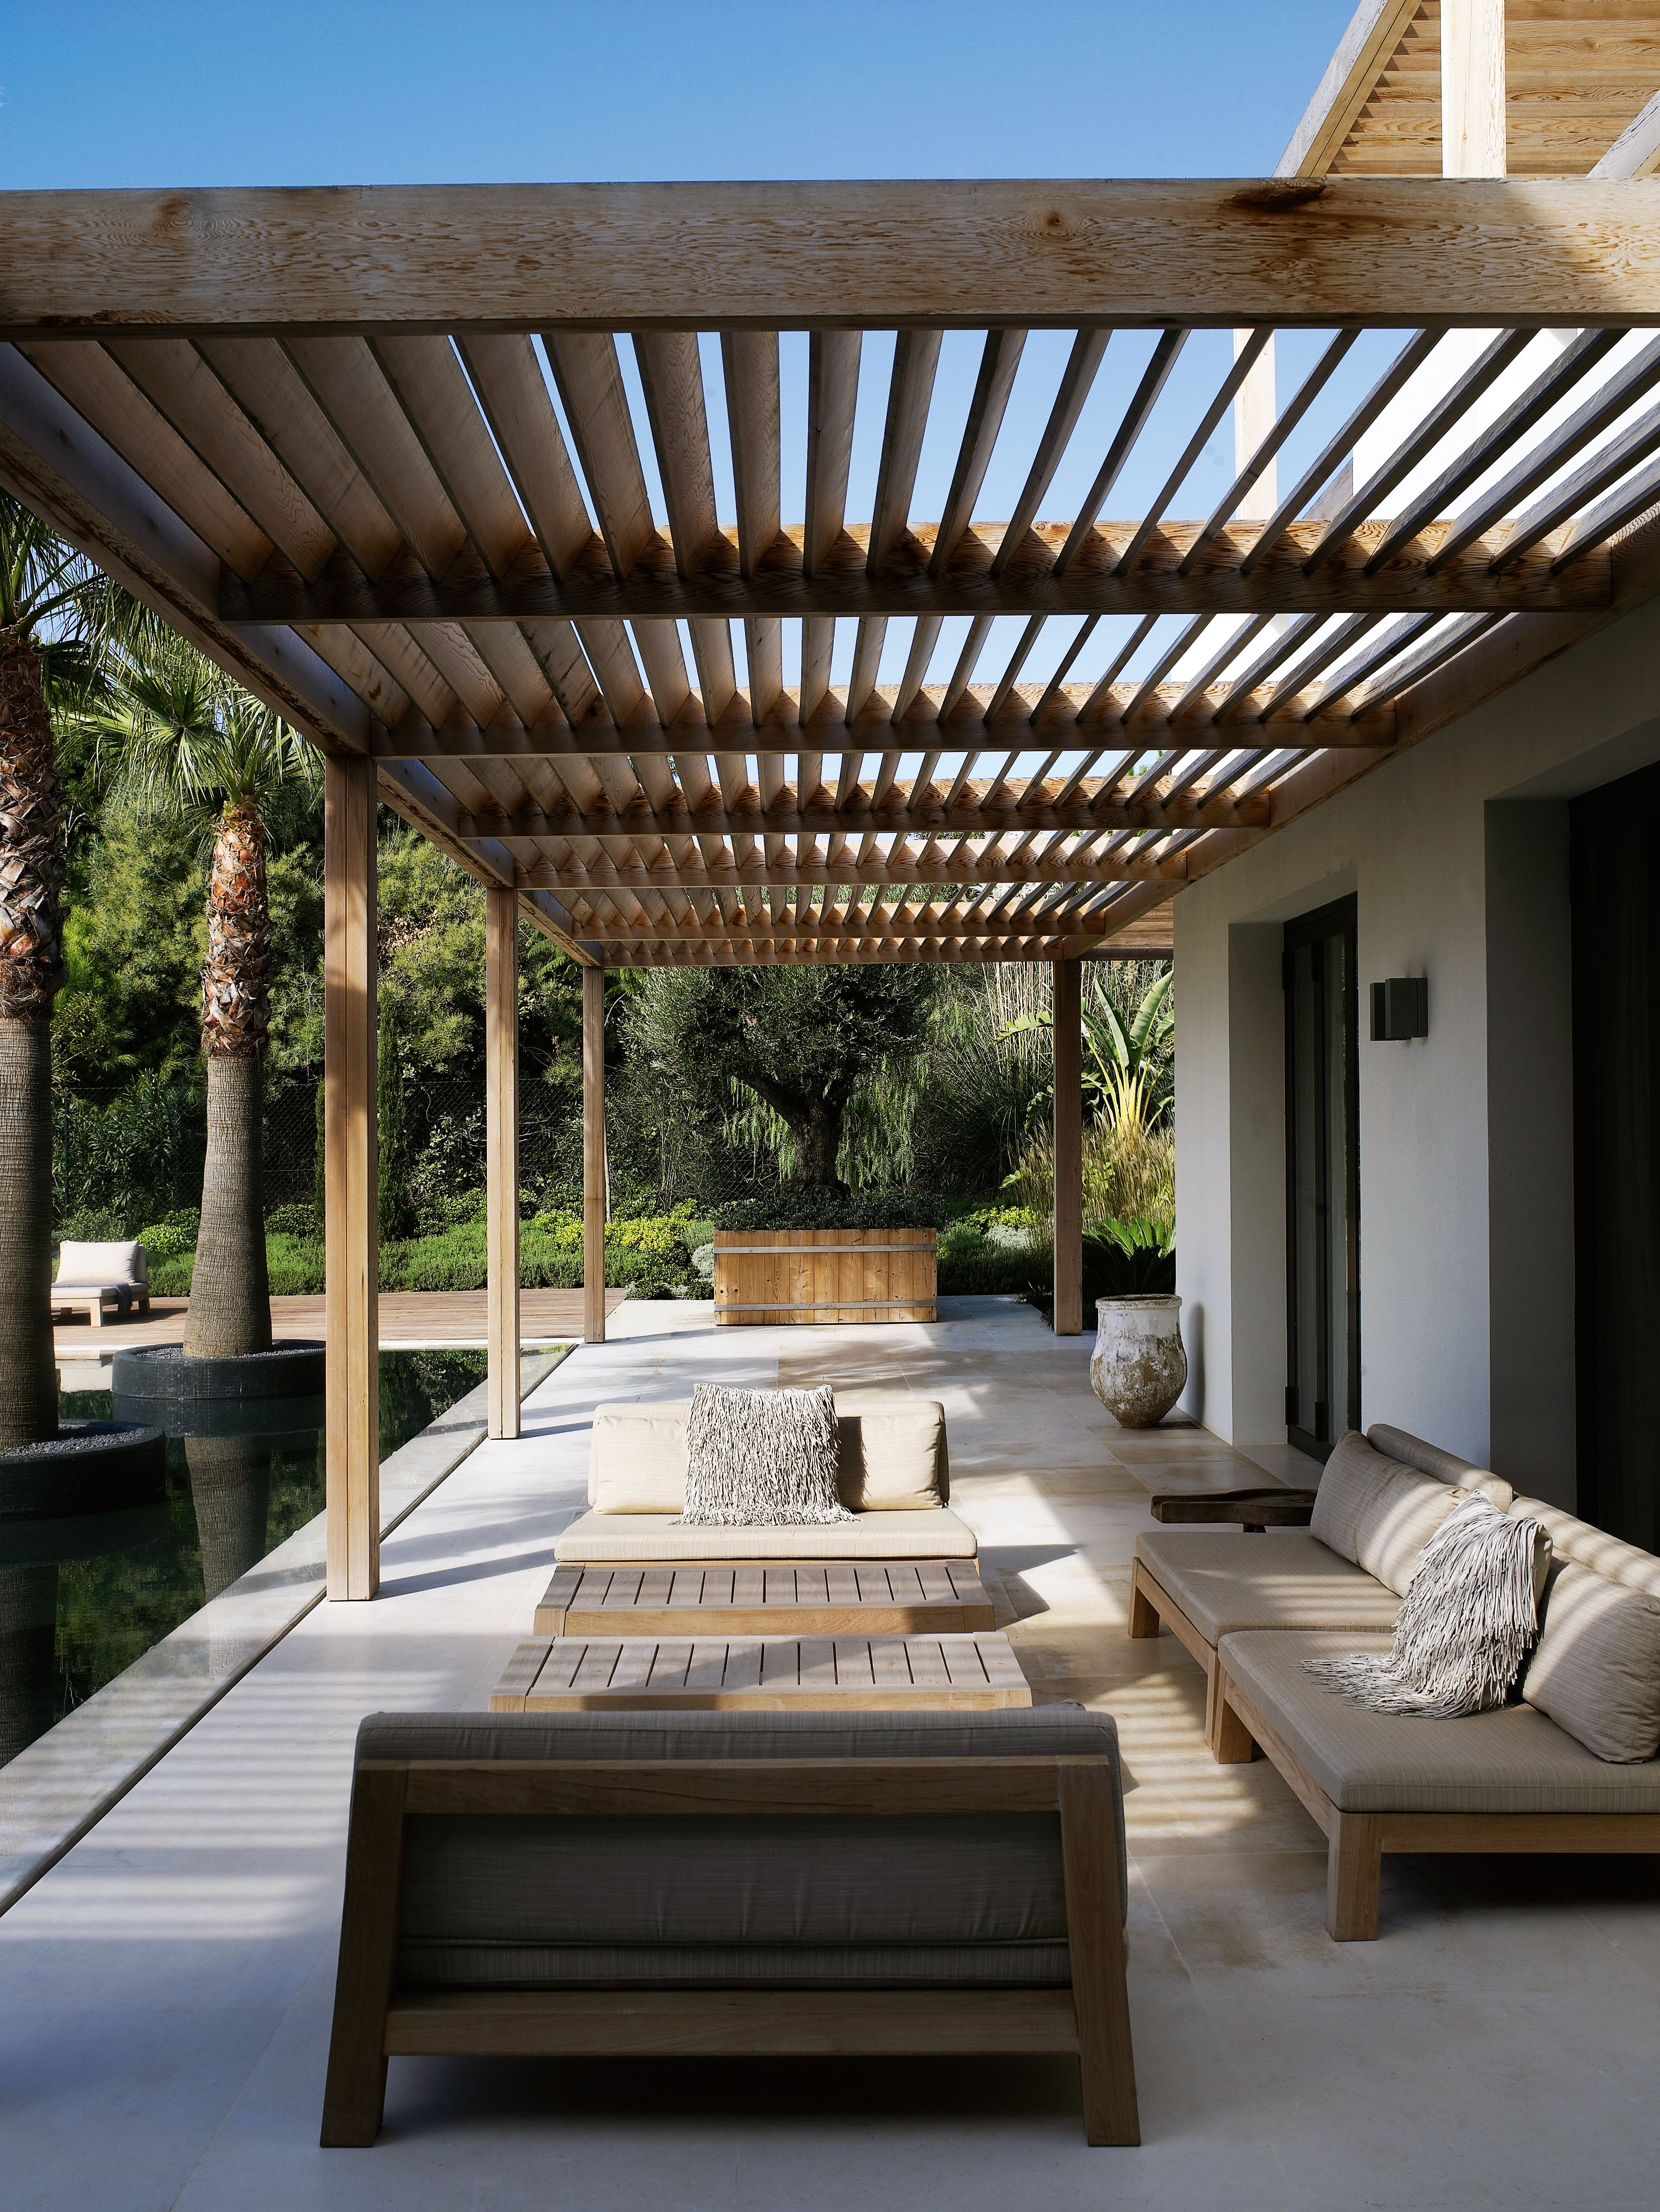 Pergola Designs Piet Boon Design Going To Make This When We Renovate Modern